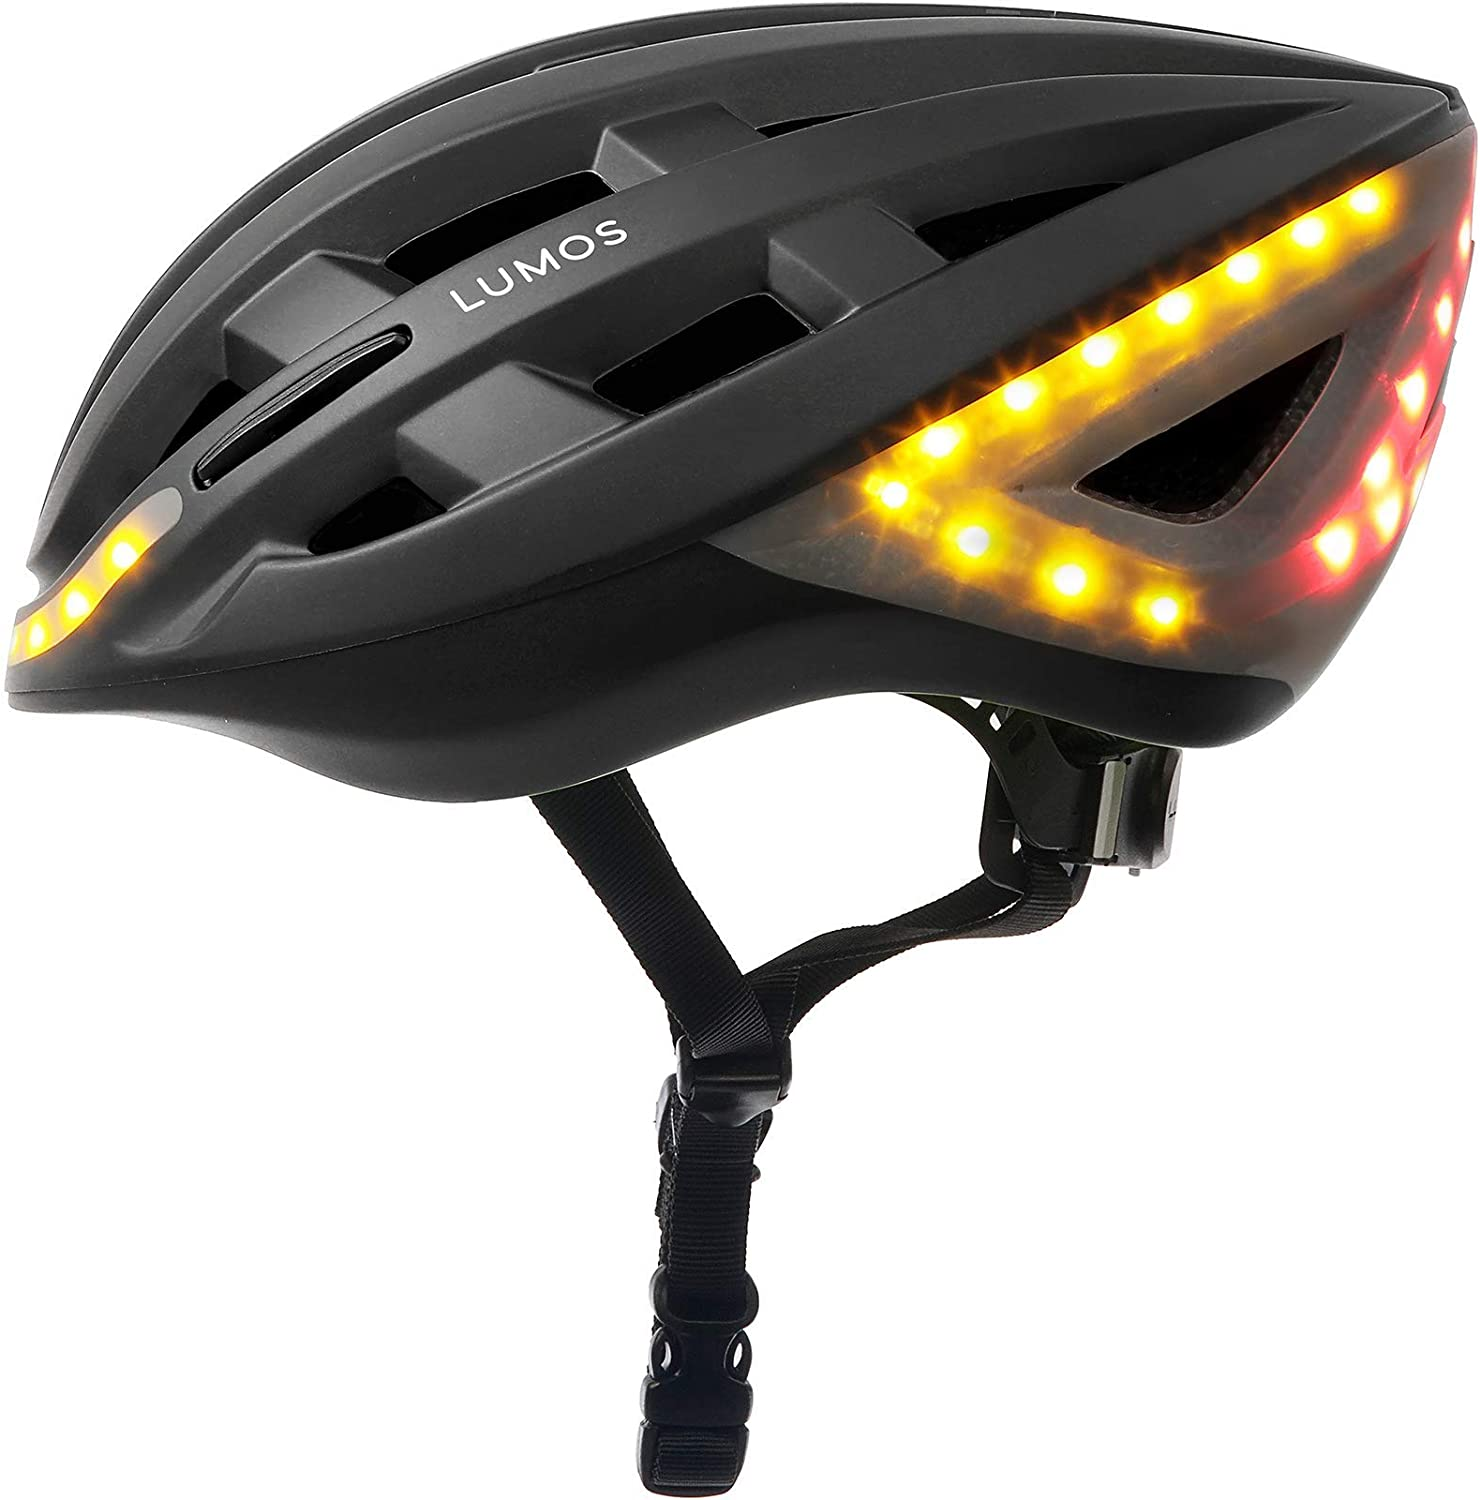 Electric Scooter Helmet Lumos Smart Wireless Turn Signal